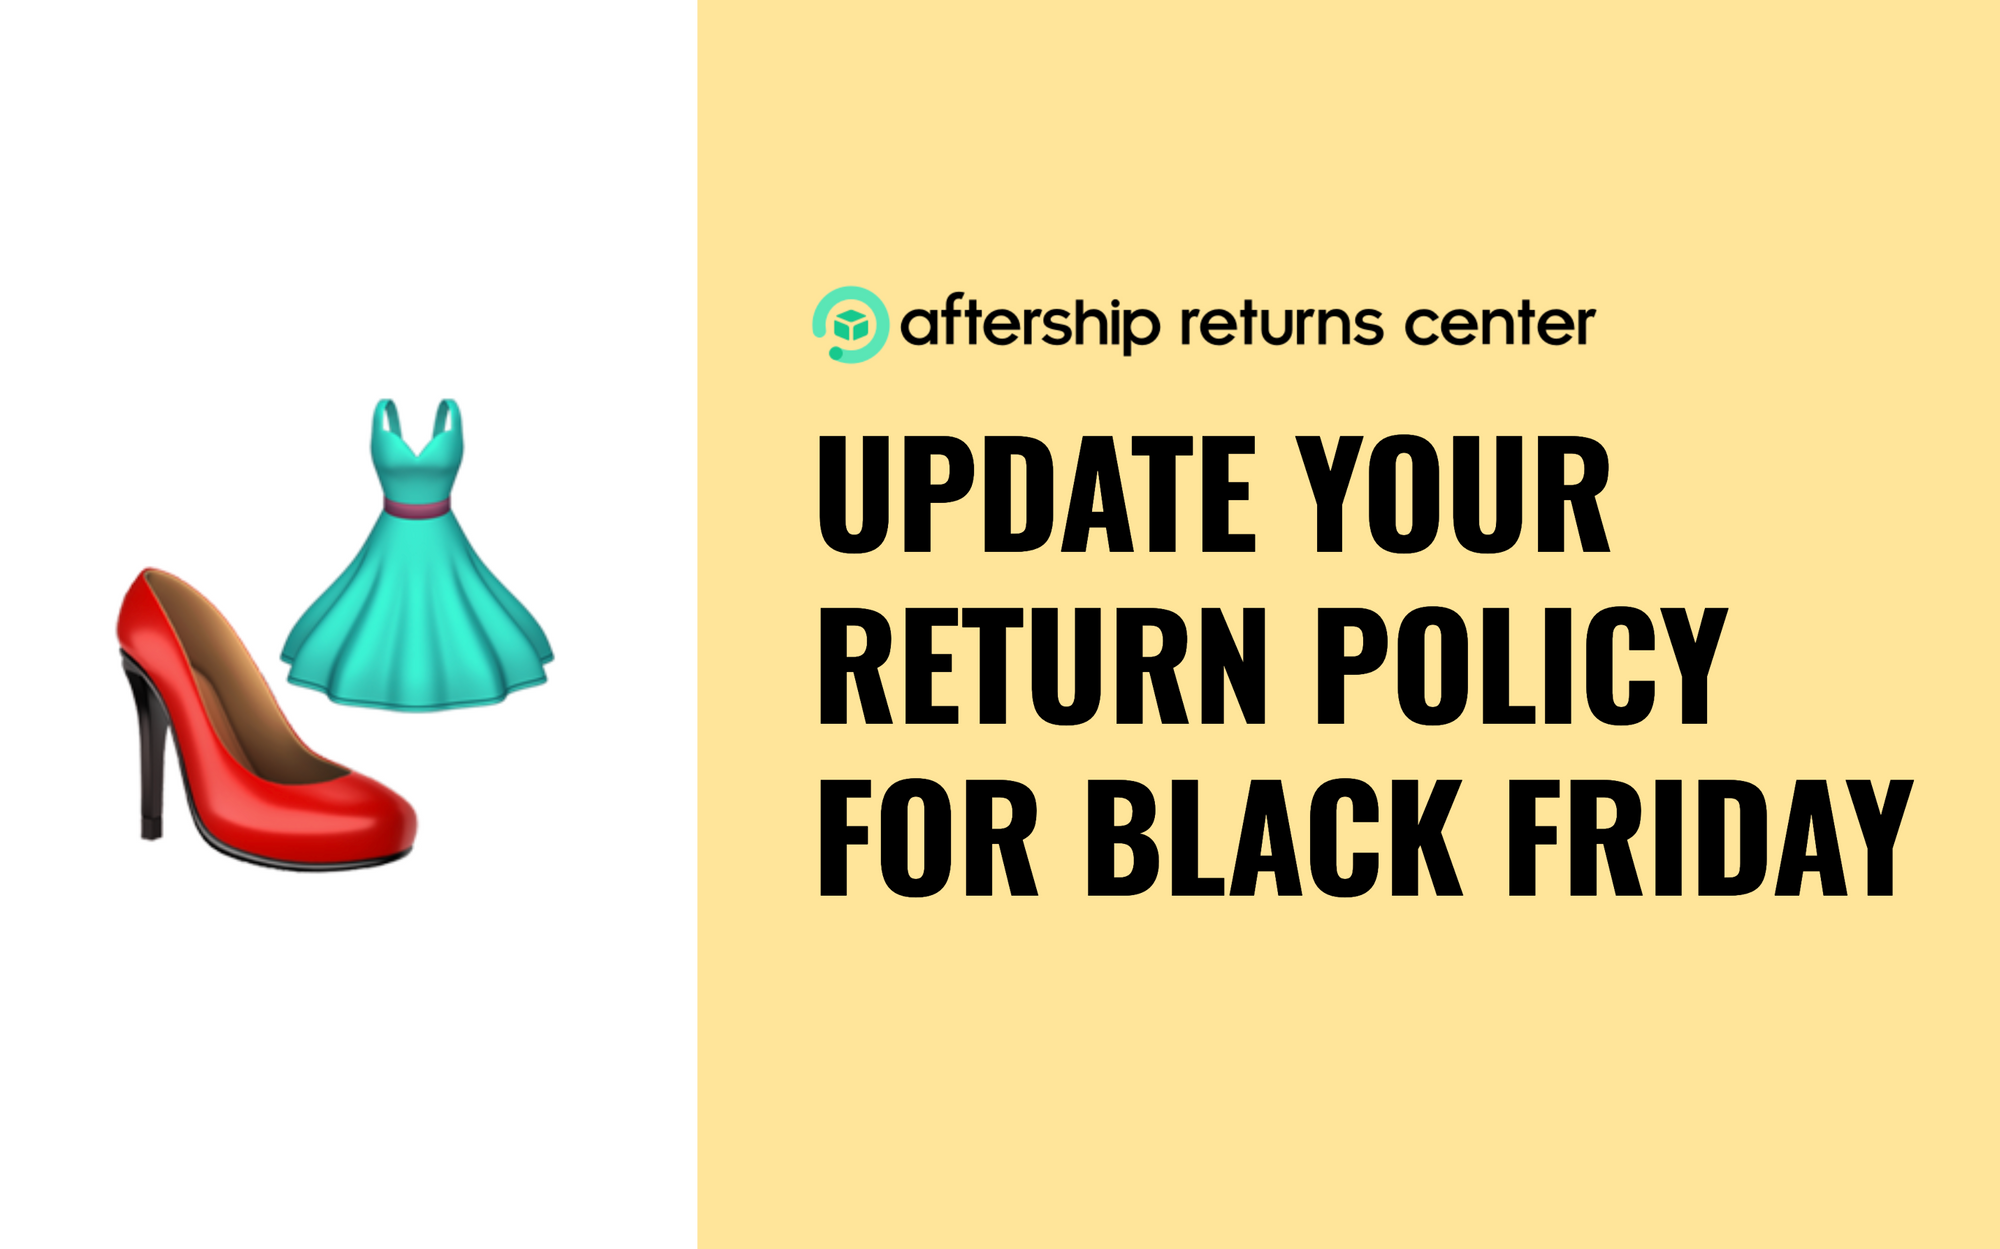 Black Friday is here! Time to update your return policy